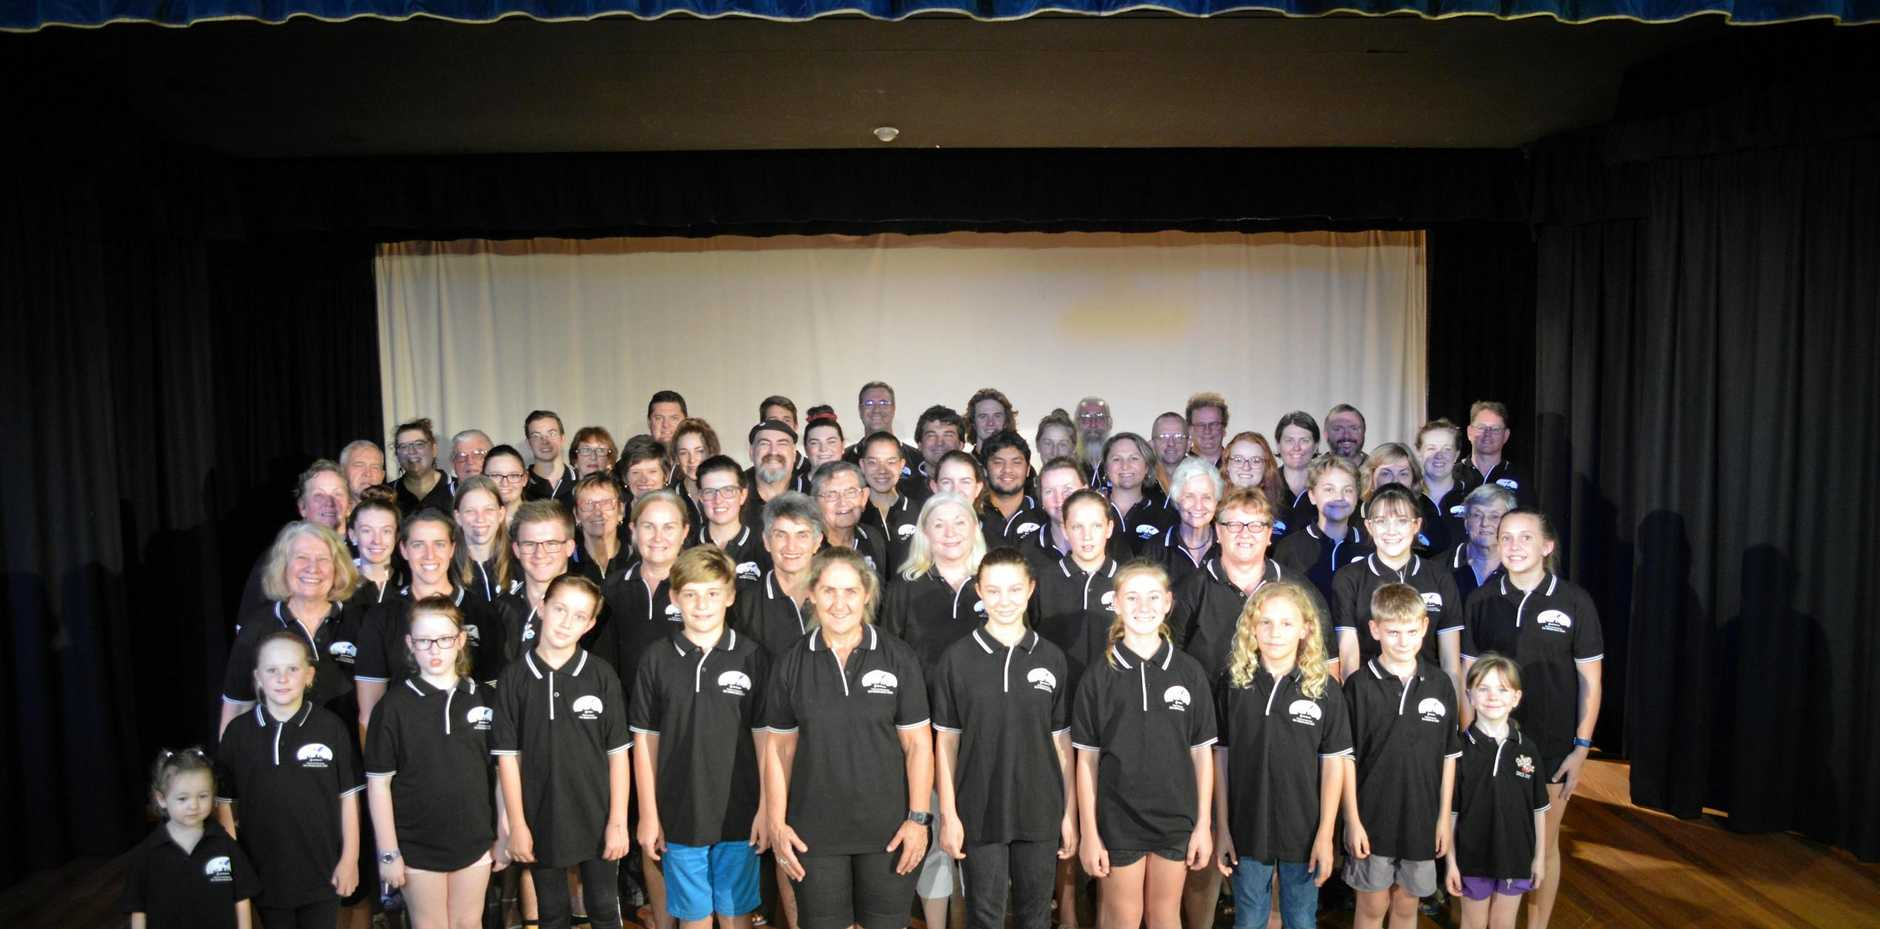 The cast of Les Miserables are ready to sing for the South Burnett community, in the production run by the South Burnett Musical Comedy Society.